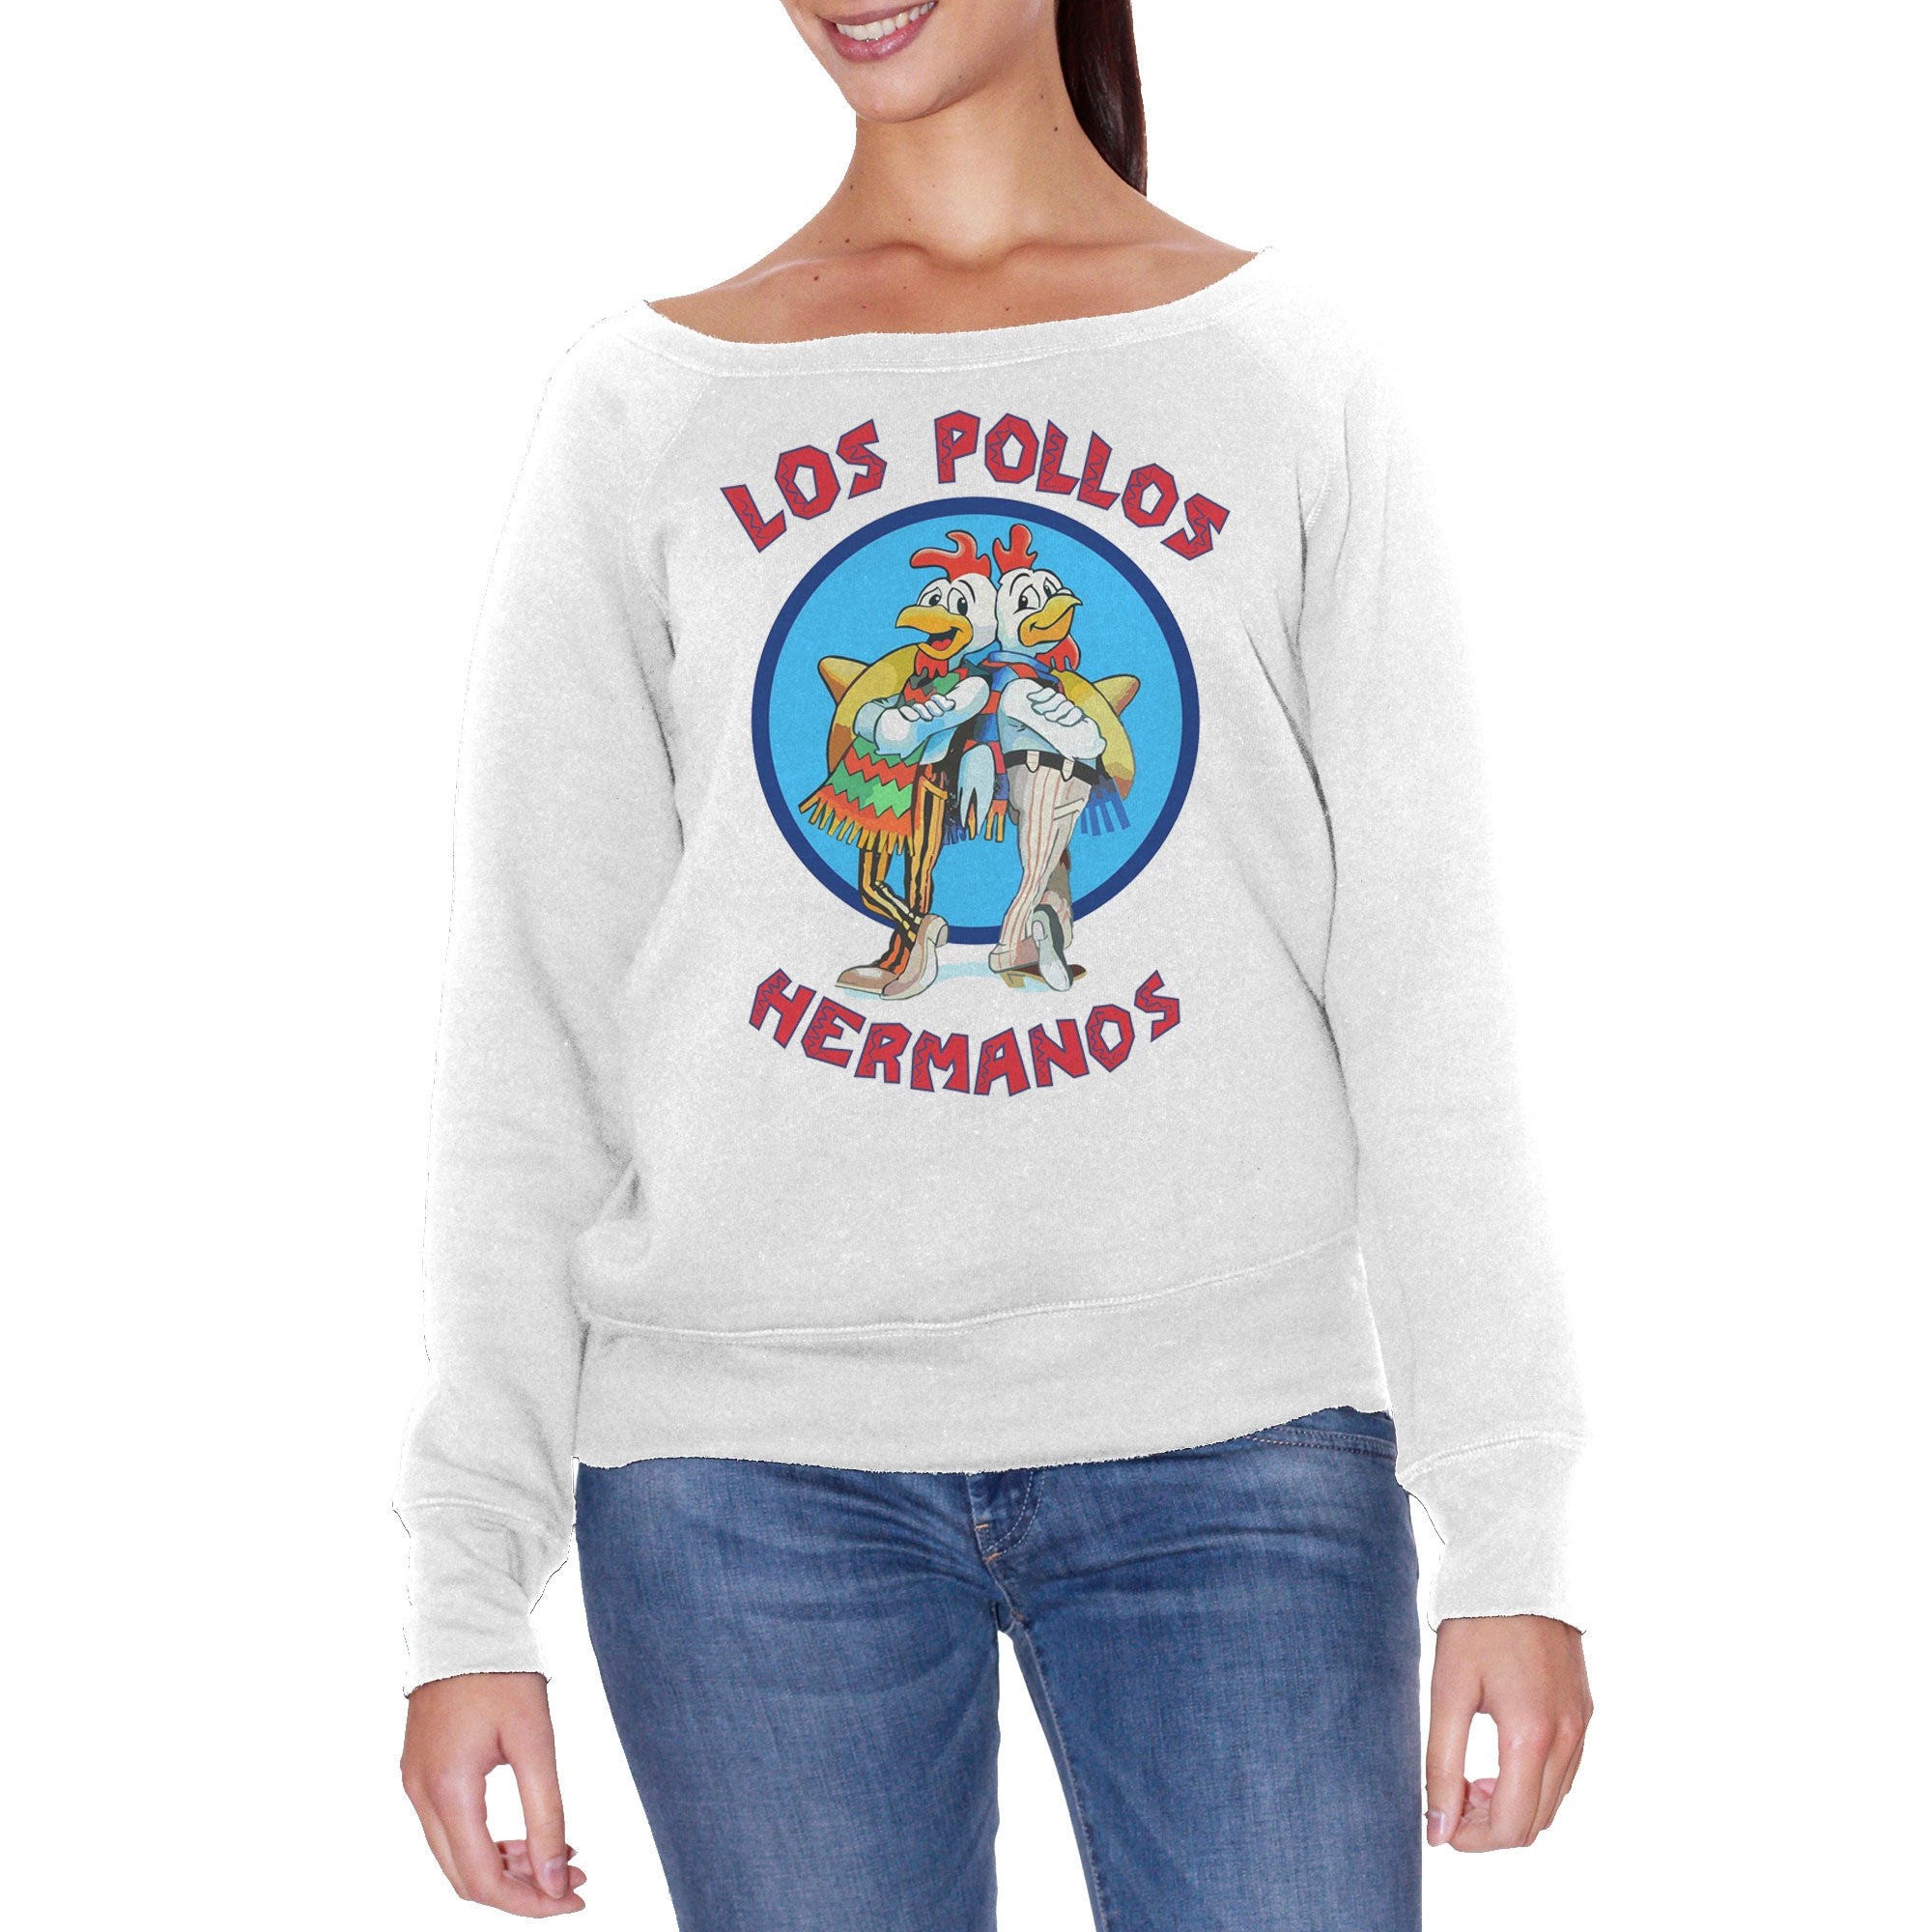 FELPA FASHION DONNA LOS POLLOS HERMANOS BREAKING BAD - CUC #chooseurcolor